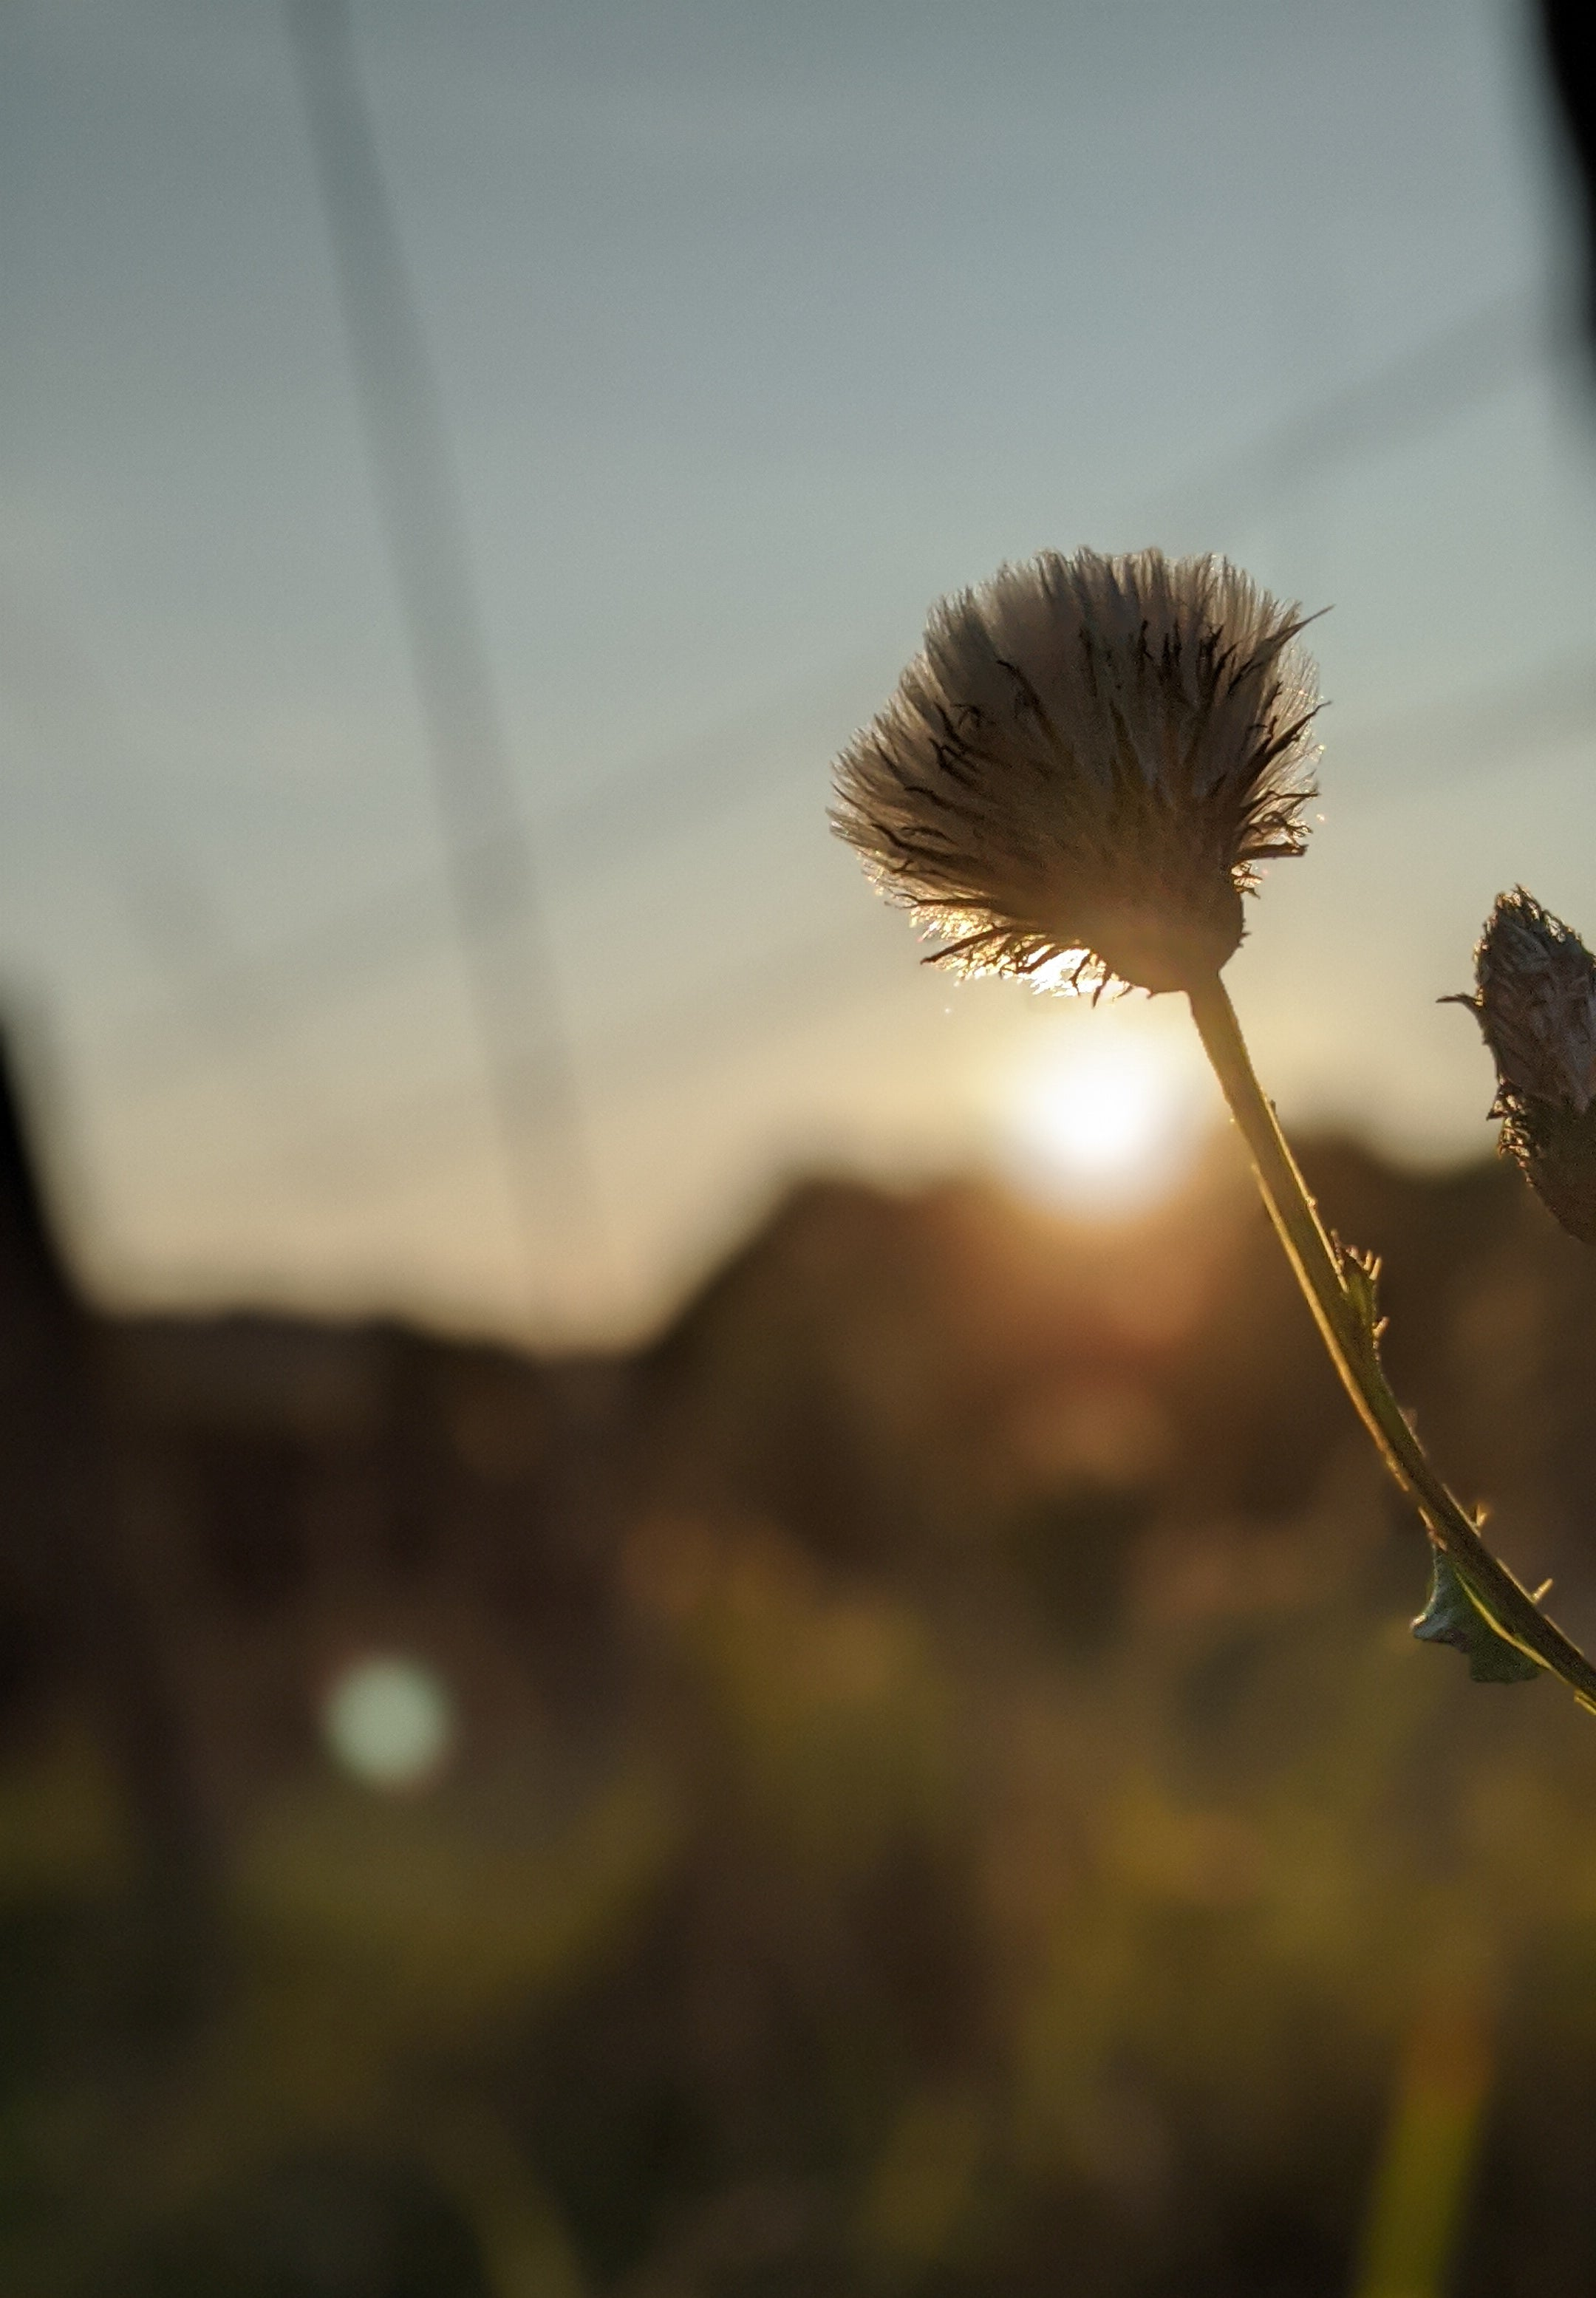 thistle down at sunset